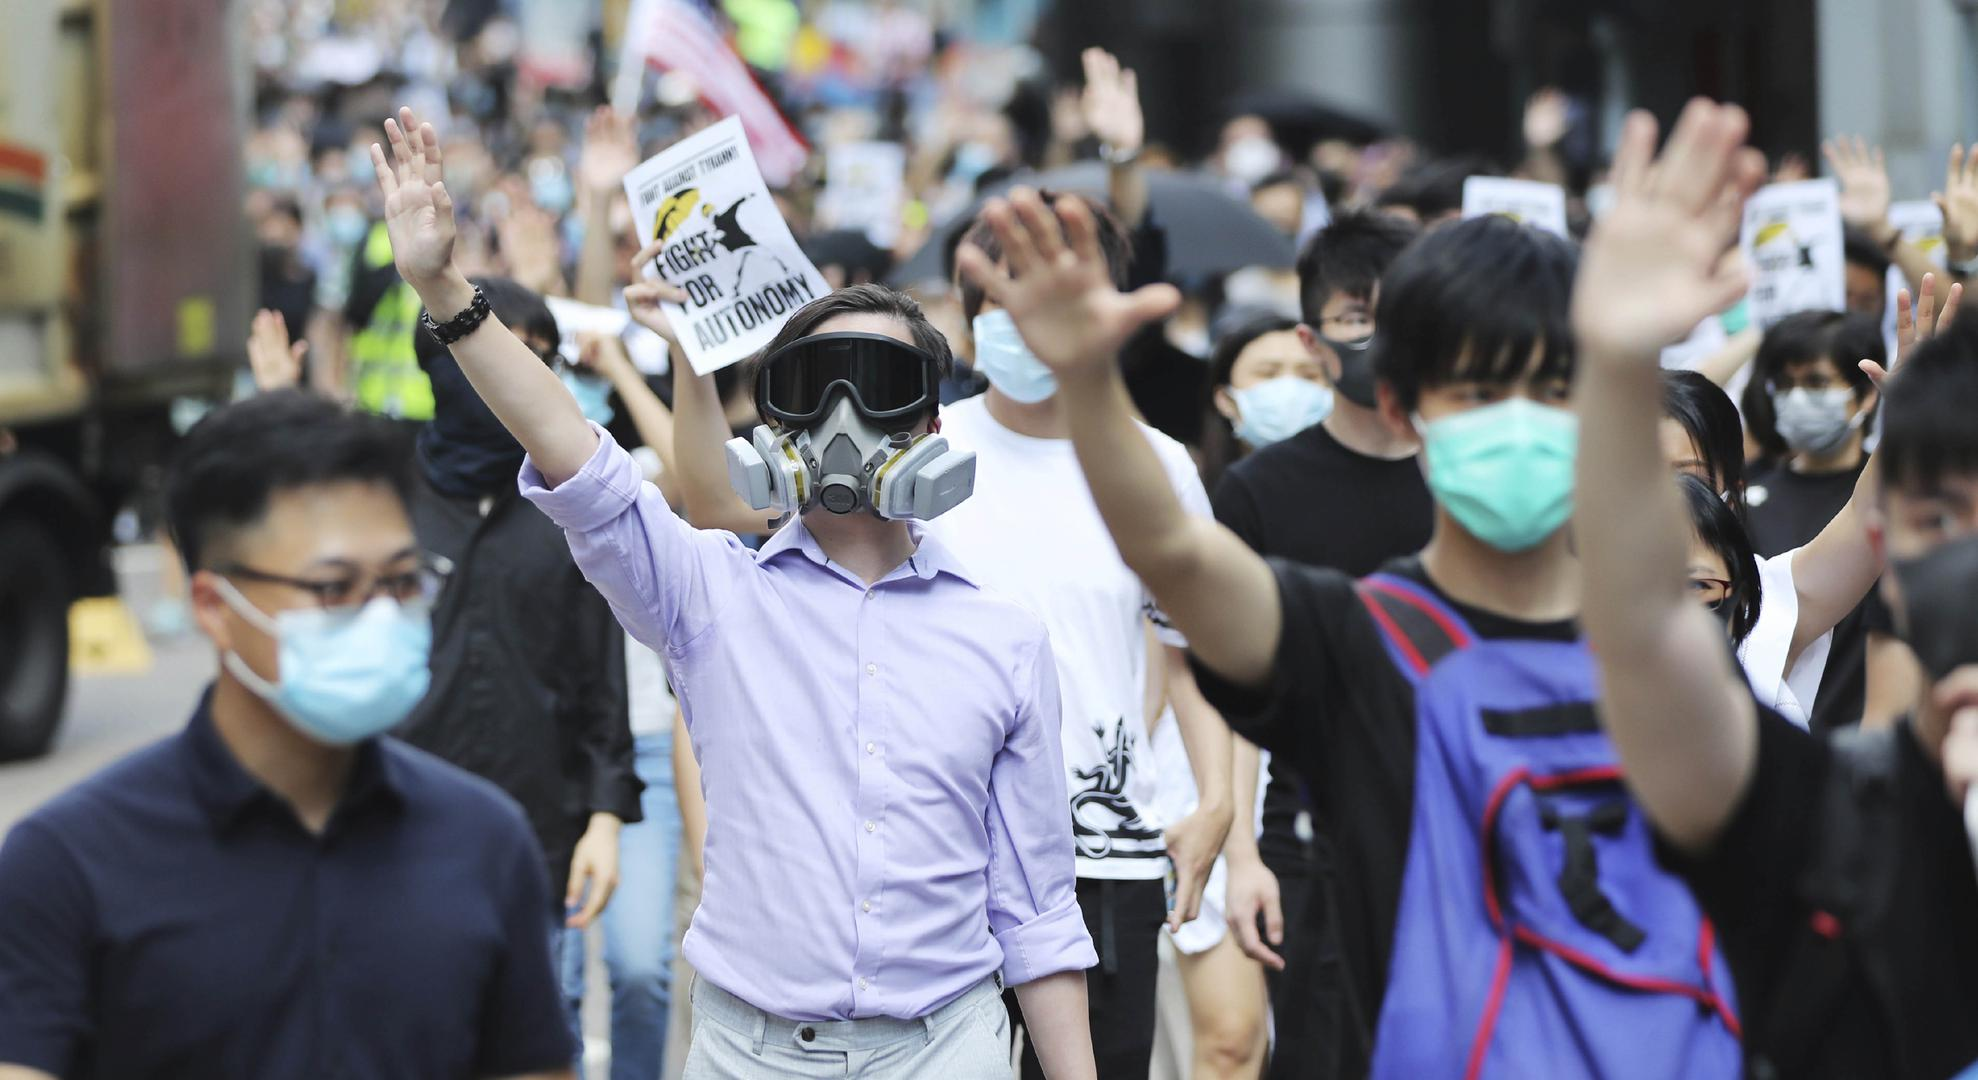 People protest the enactment of the anti-mask law in Hong Kong, October 4, 2019.